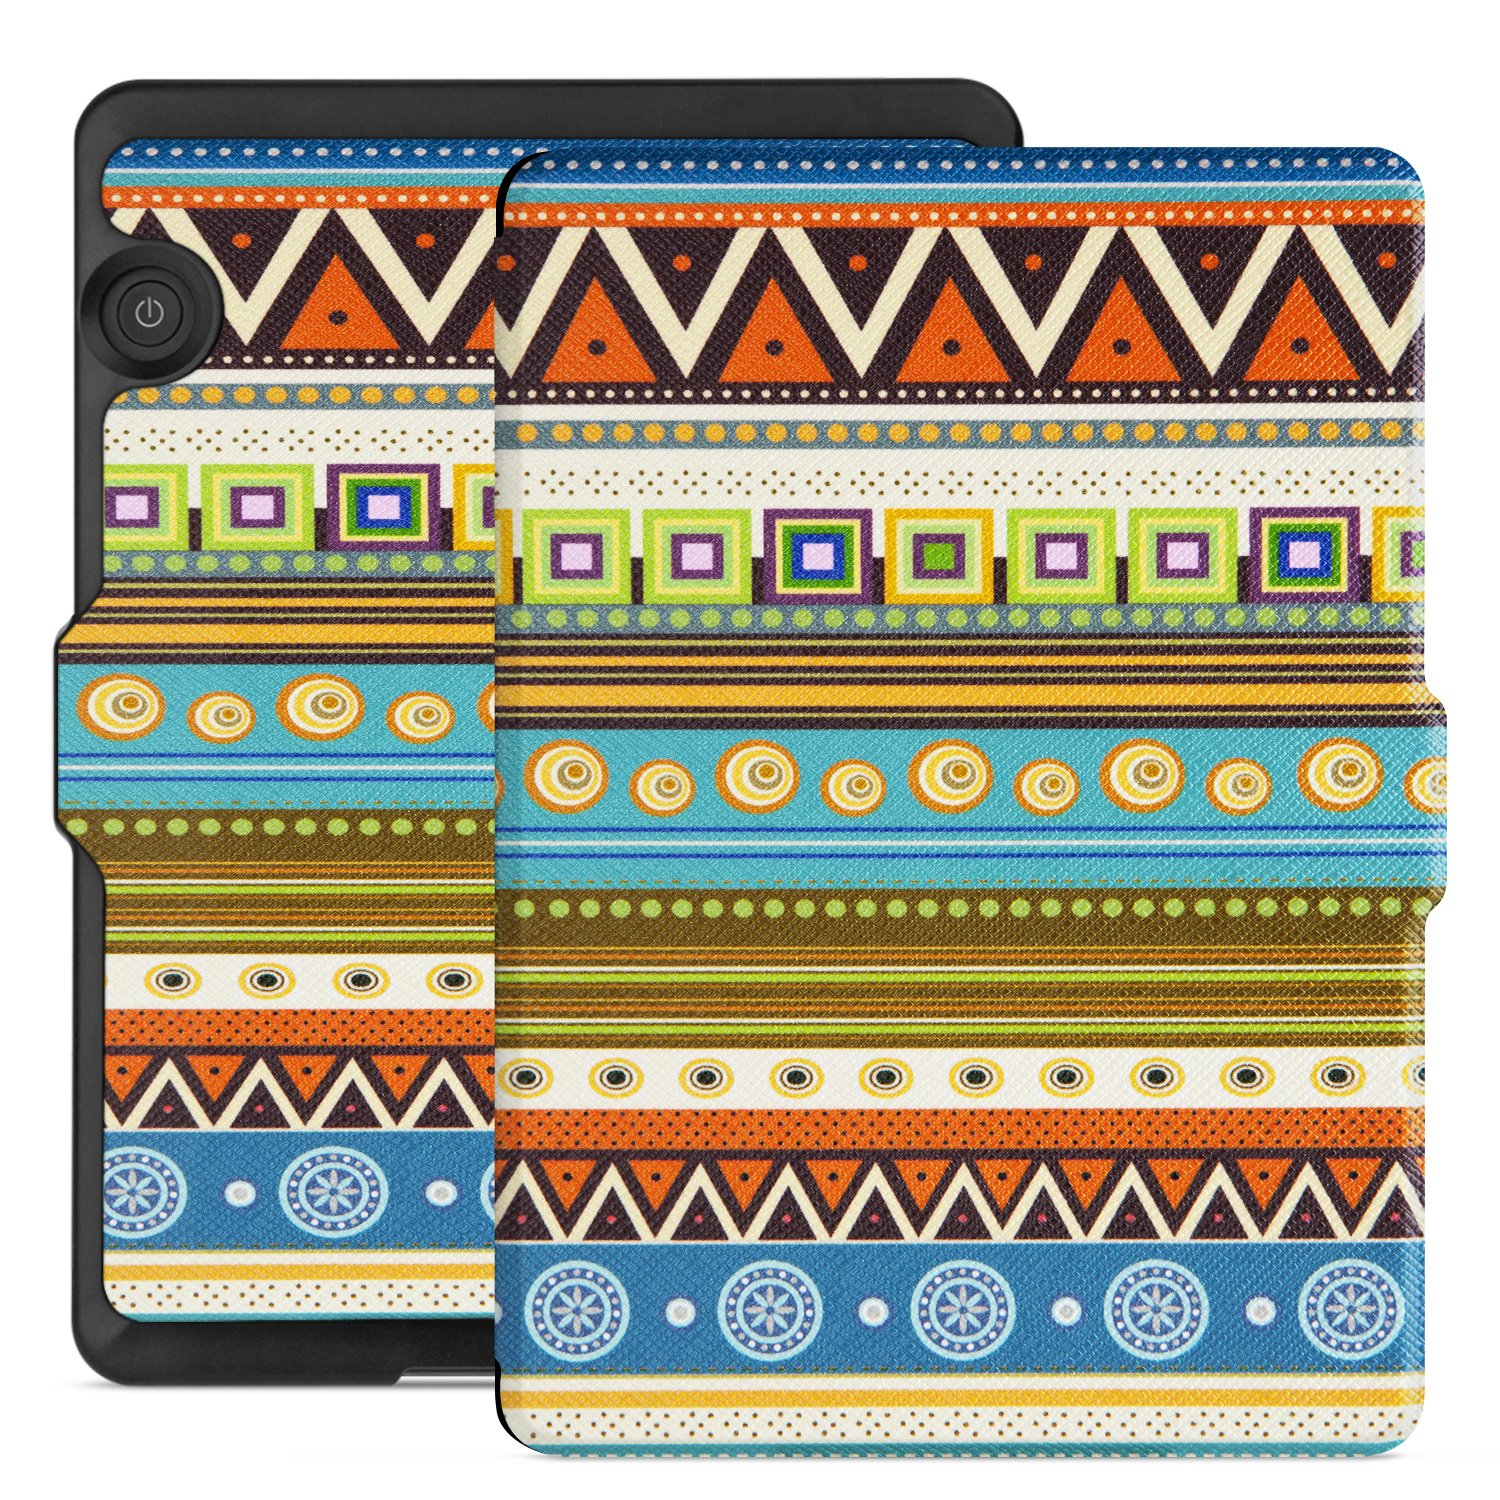 Ayotu Case for Kindle Voyage E-reader Auto Wake and Sleep Smart Protective Cover, For 2014 Kindle Voyage Case Painting Series KV-04 The Totem